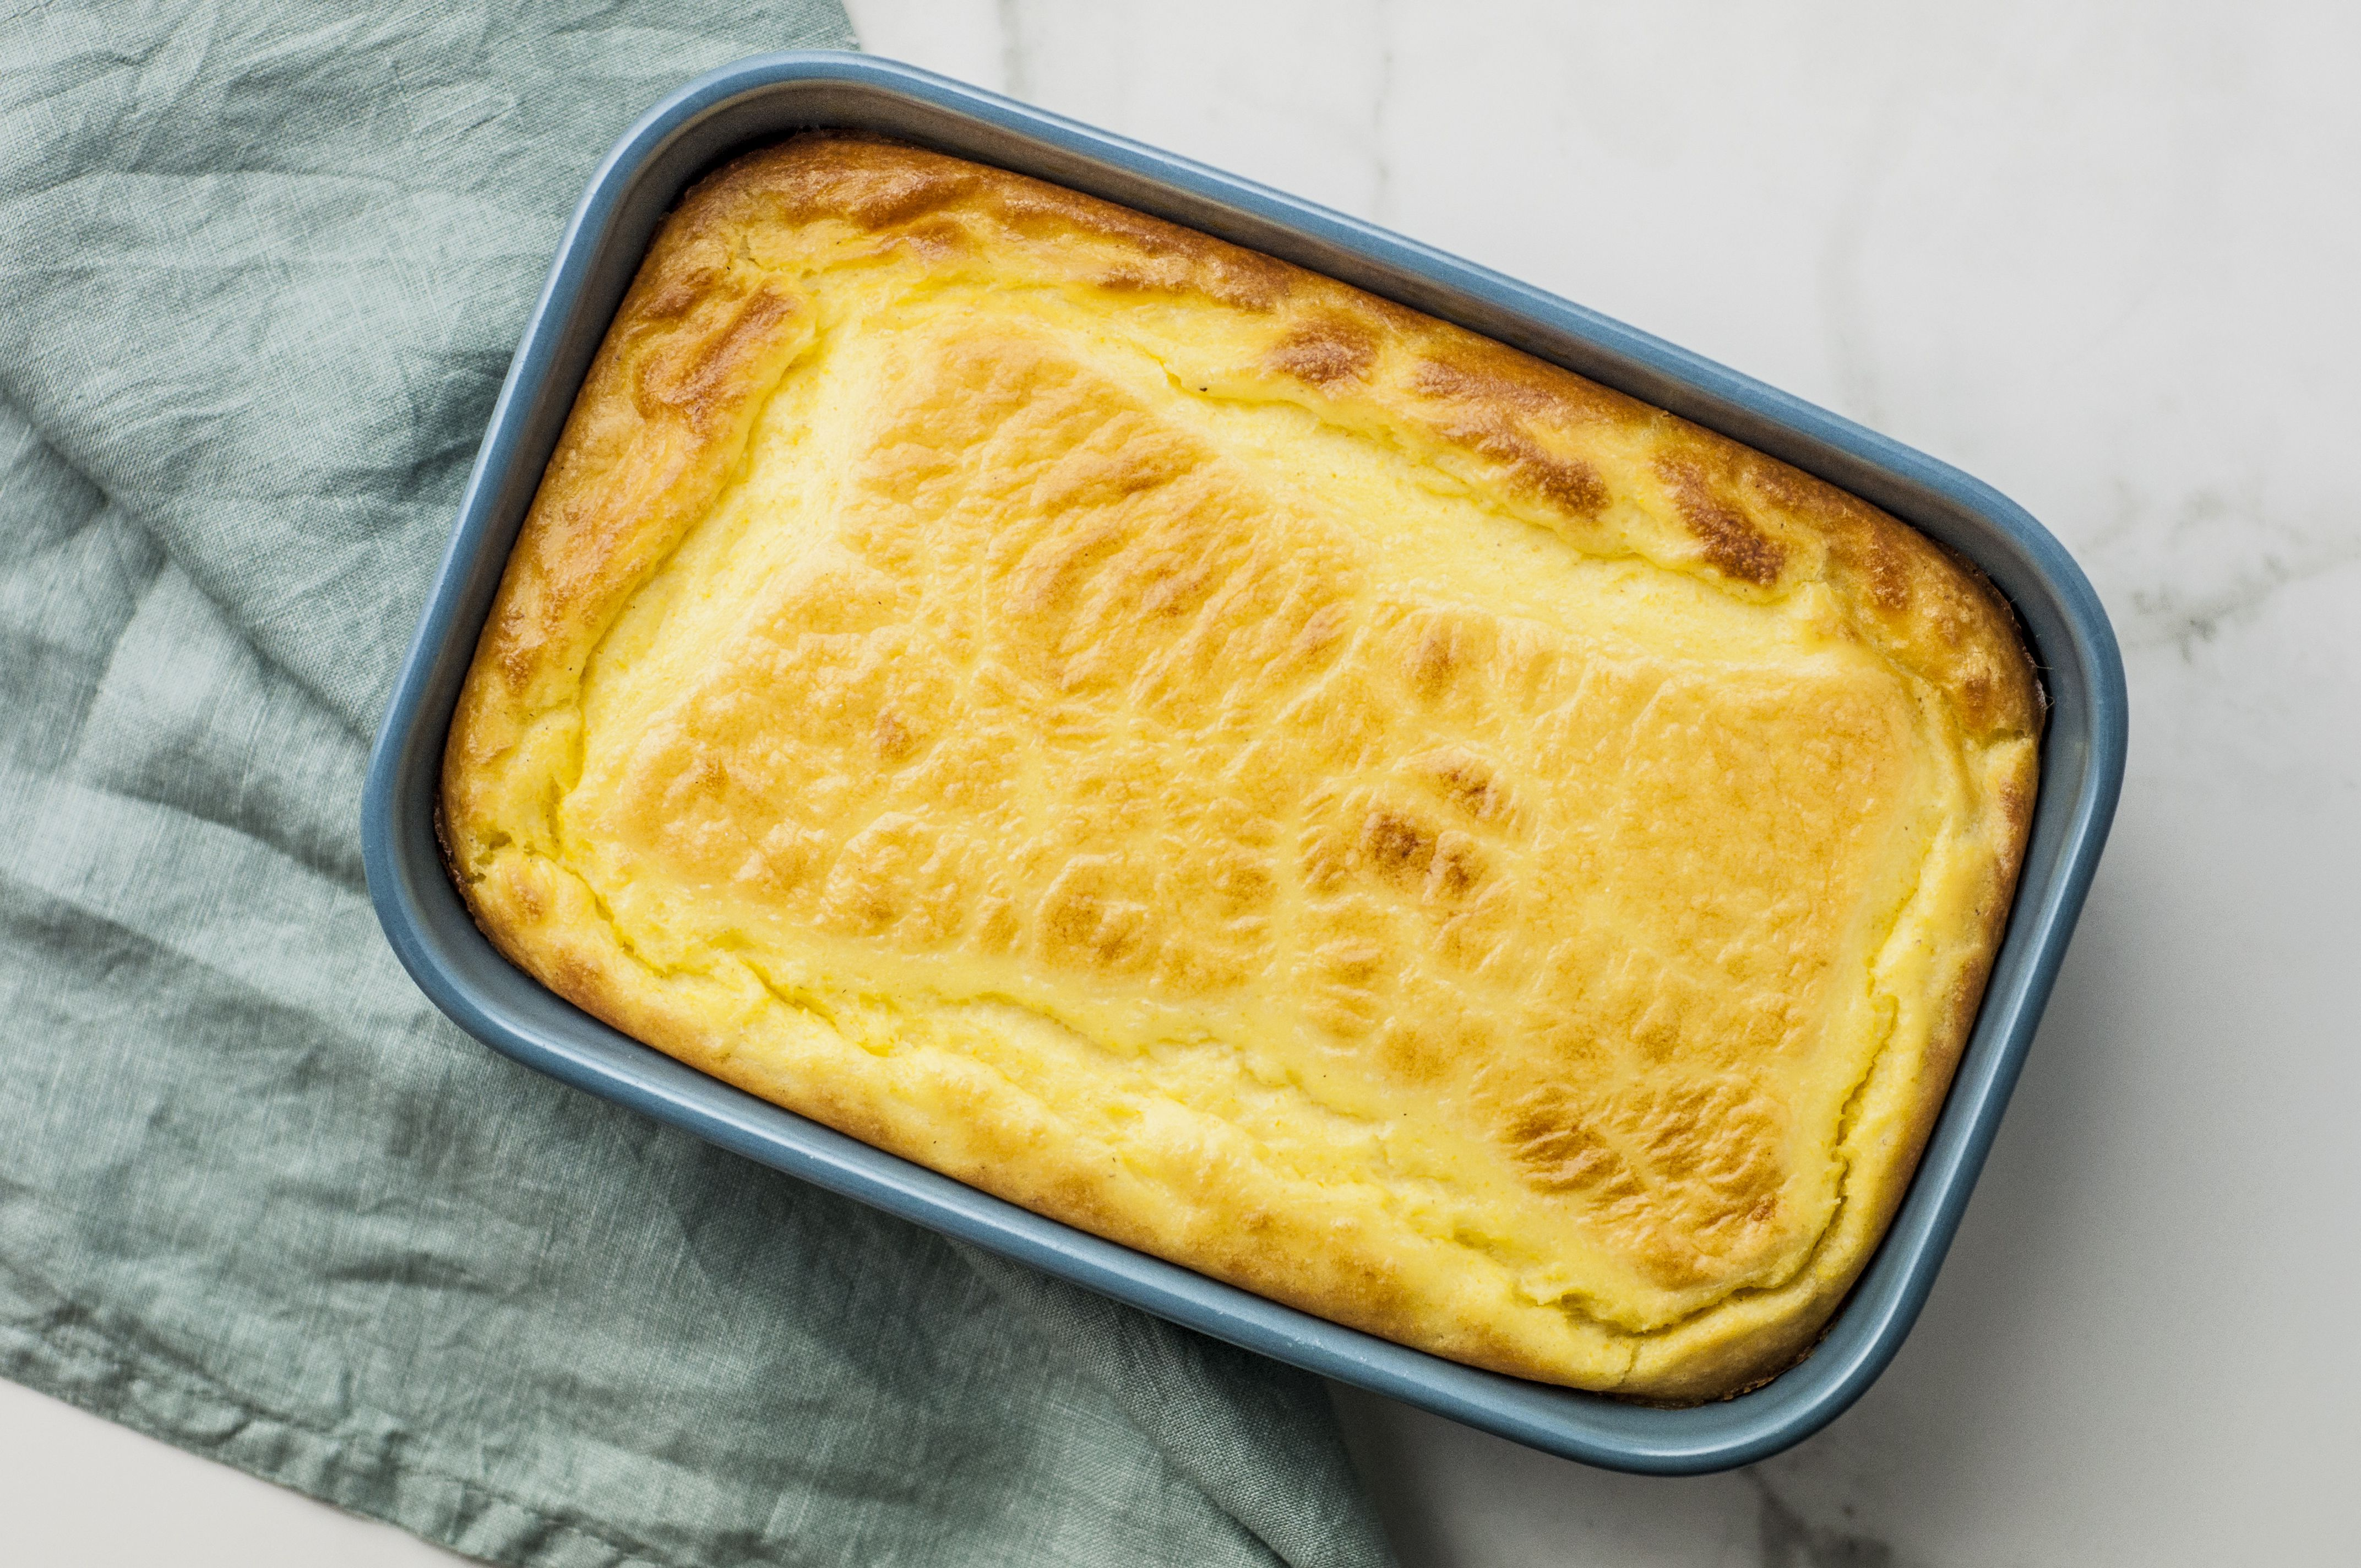 Southern spoon bread browned from the oven